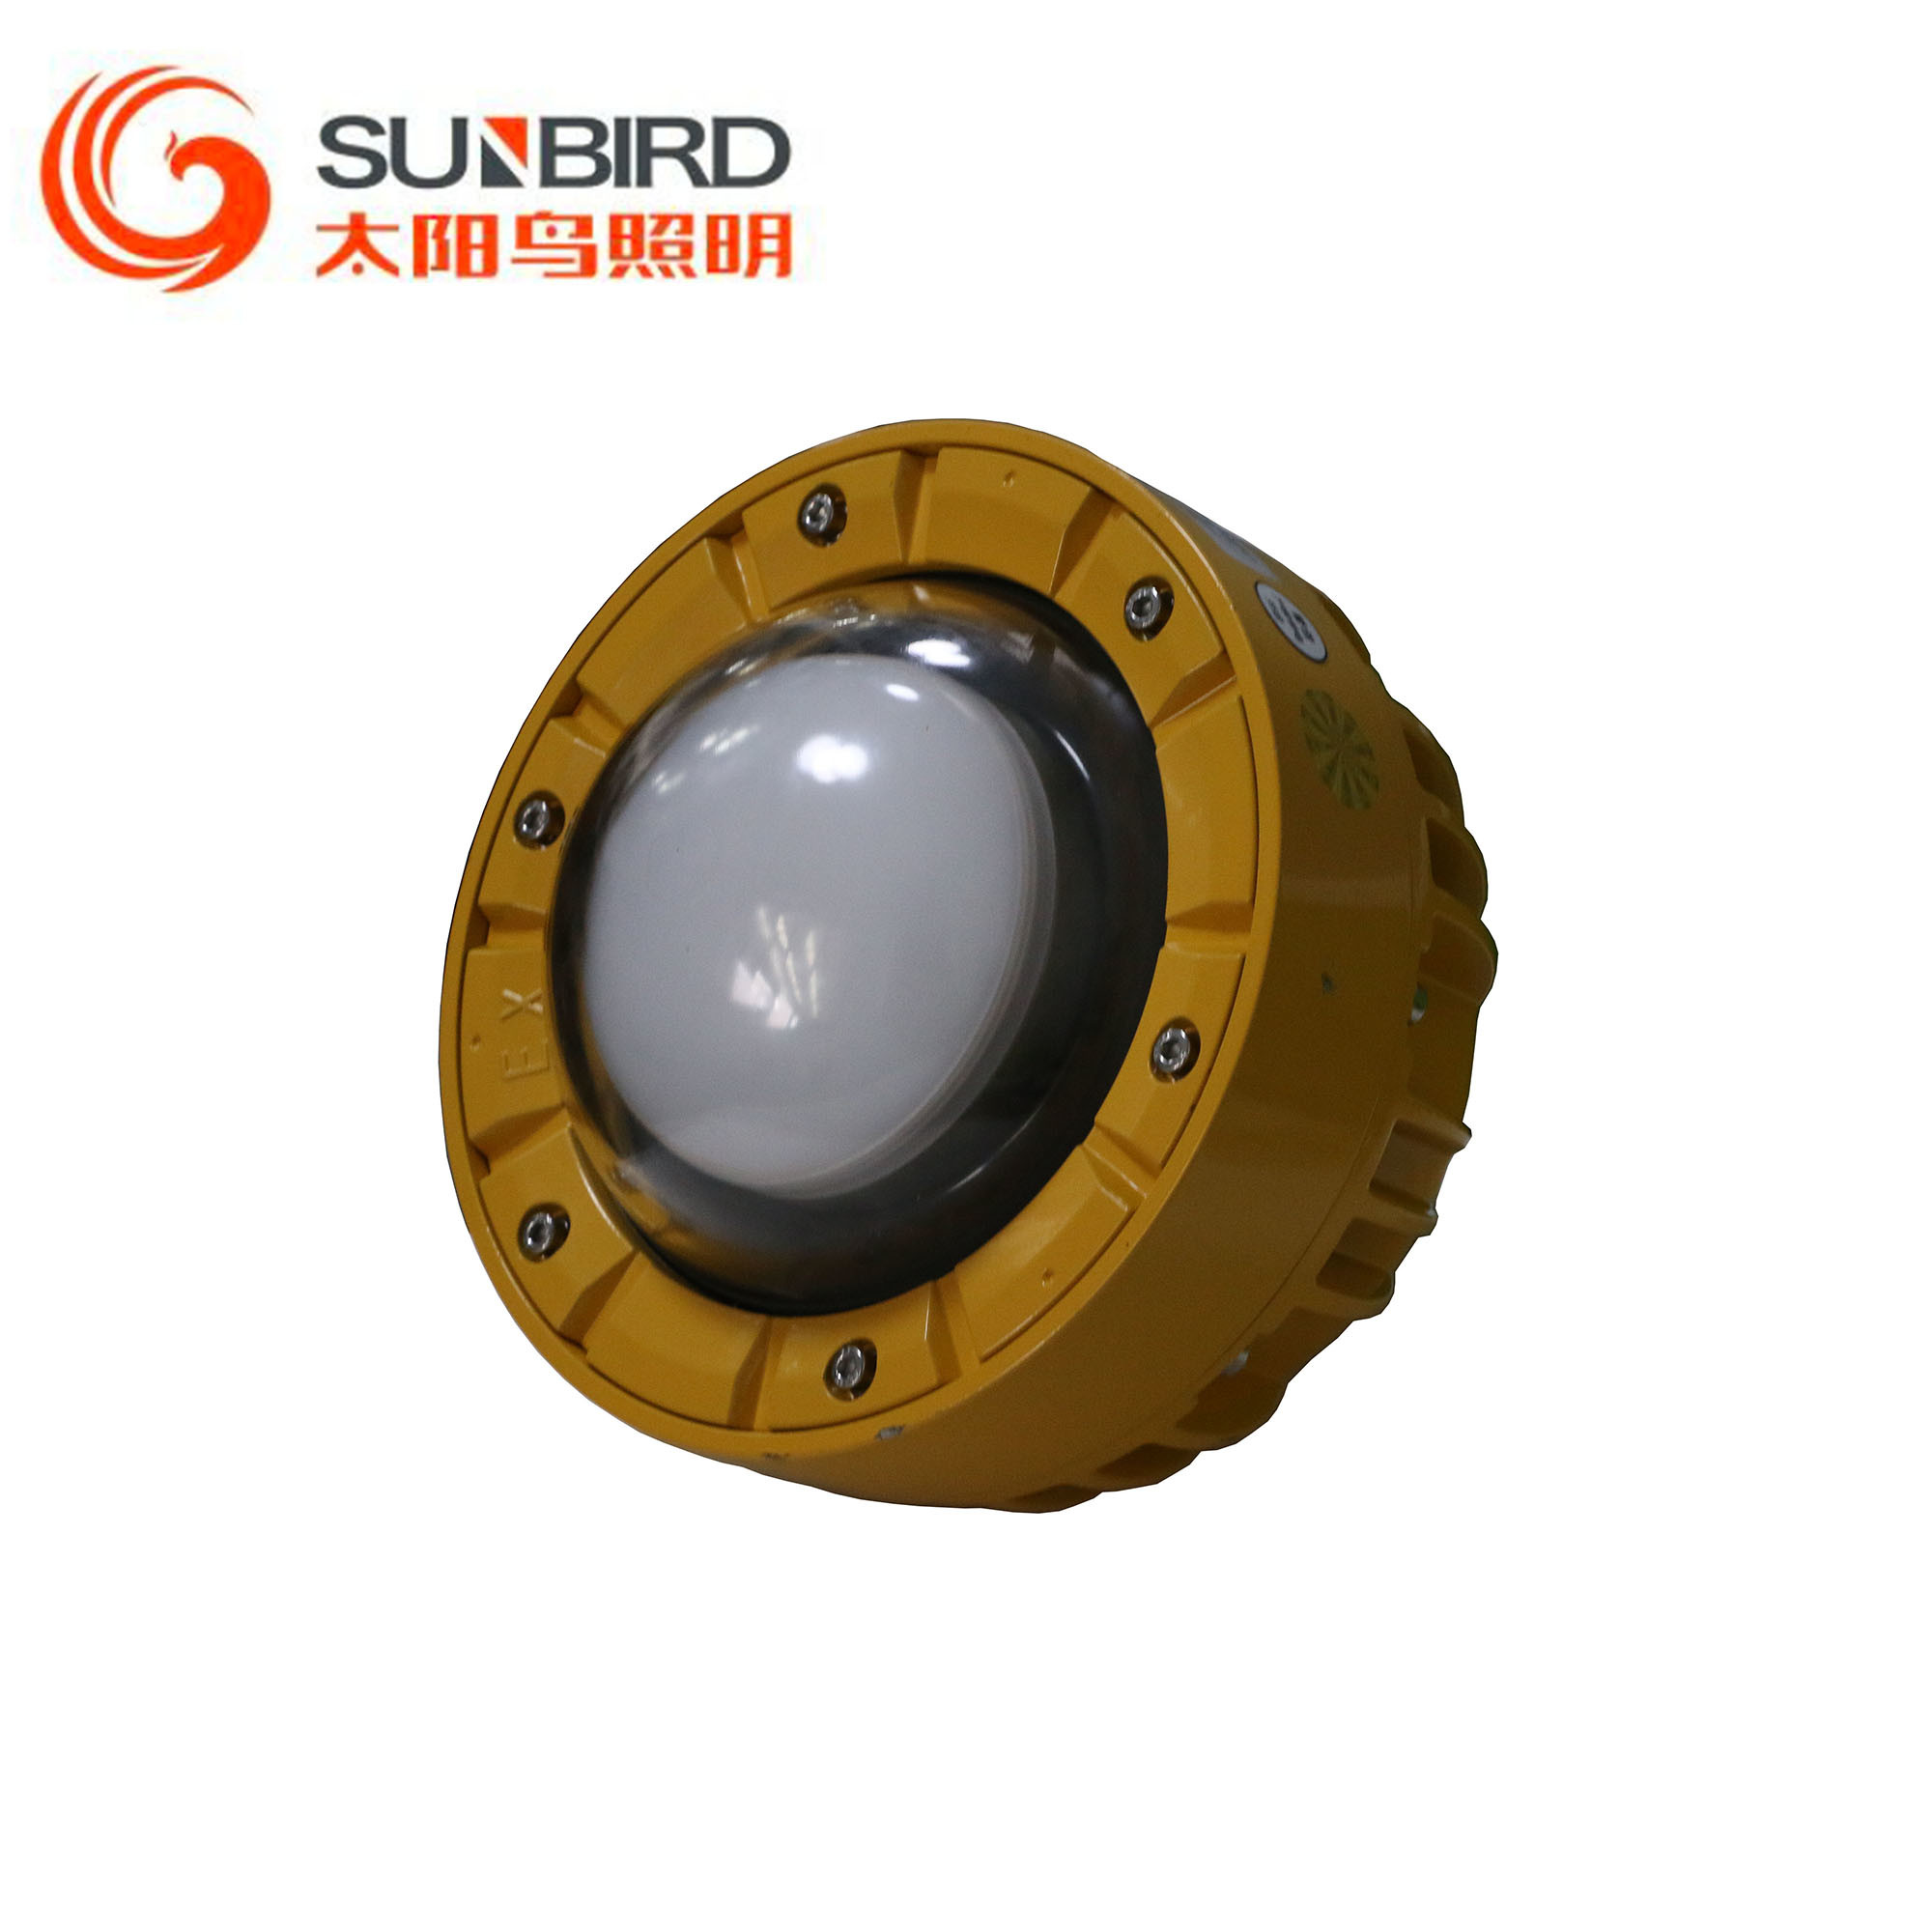 Sunbird IP65 Explosion-Proof Lamp pictures & photos